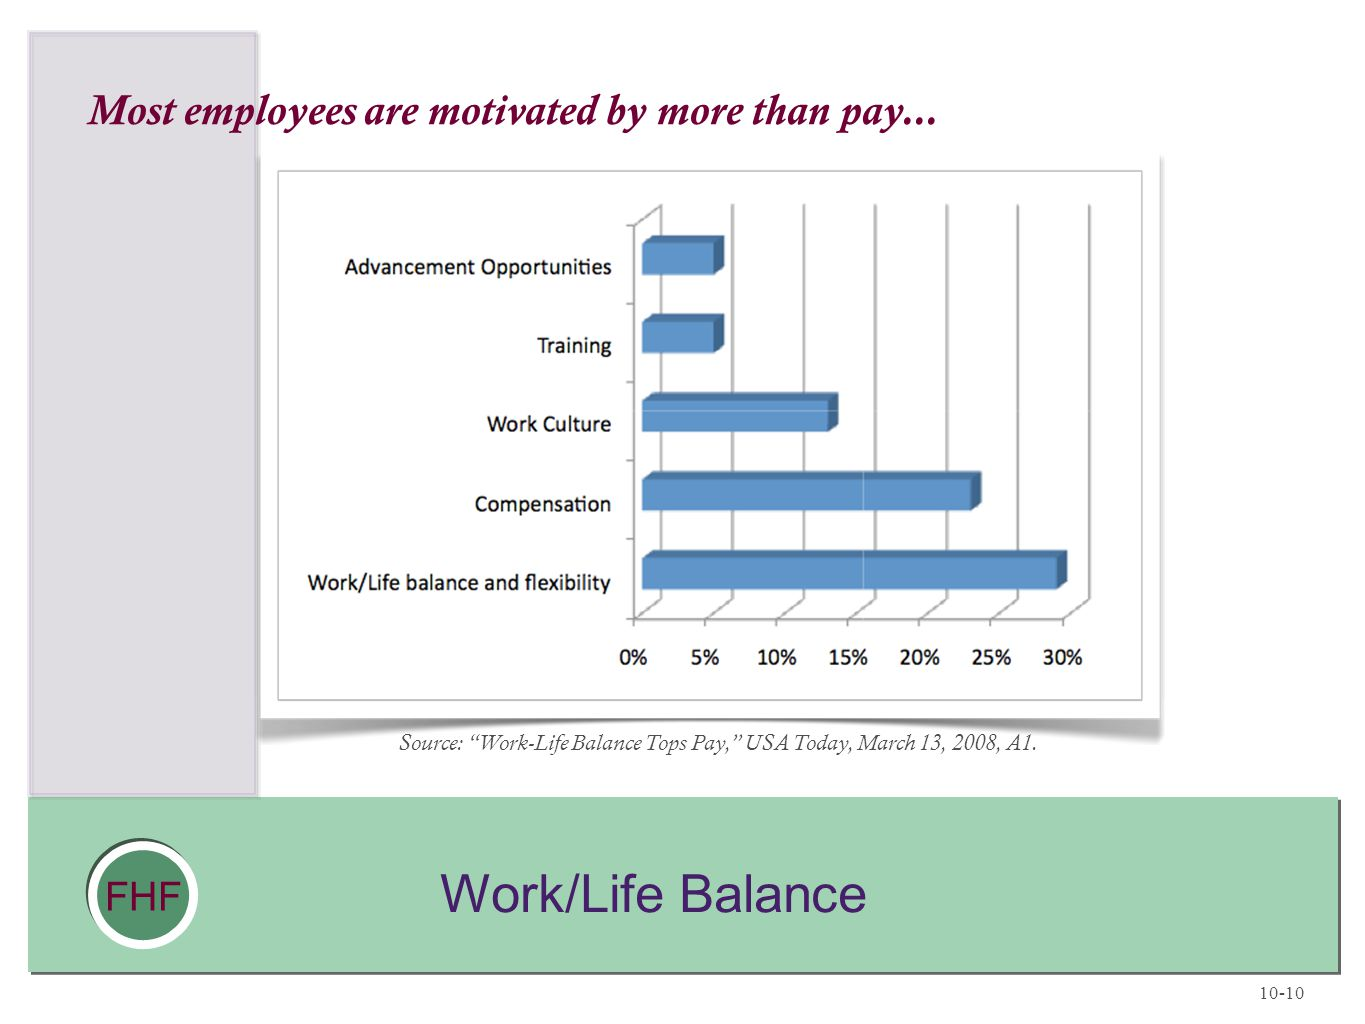 Most employees are motivated by more than pay...